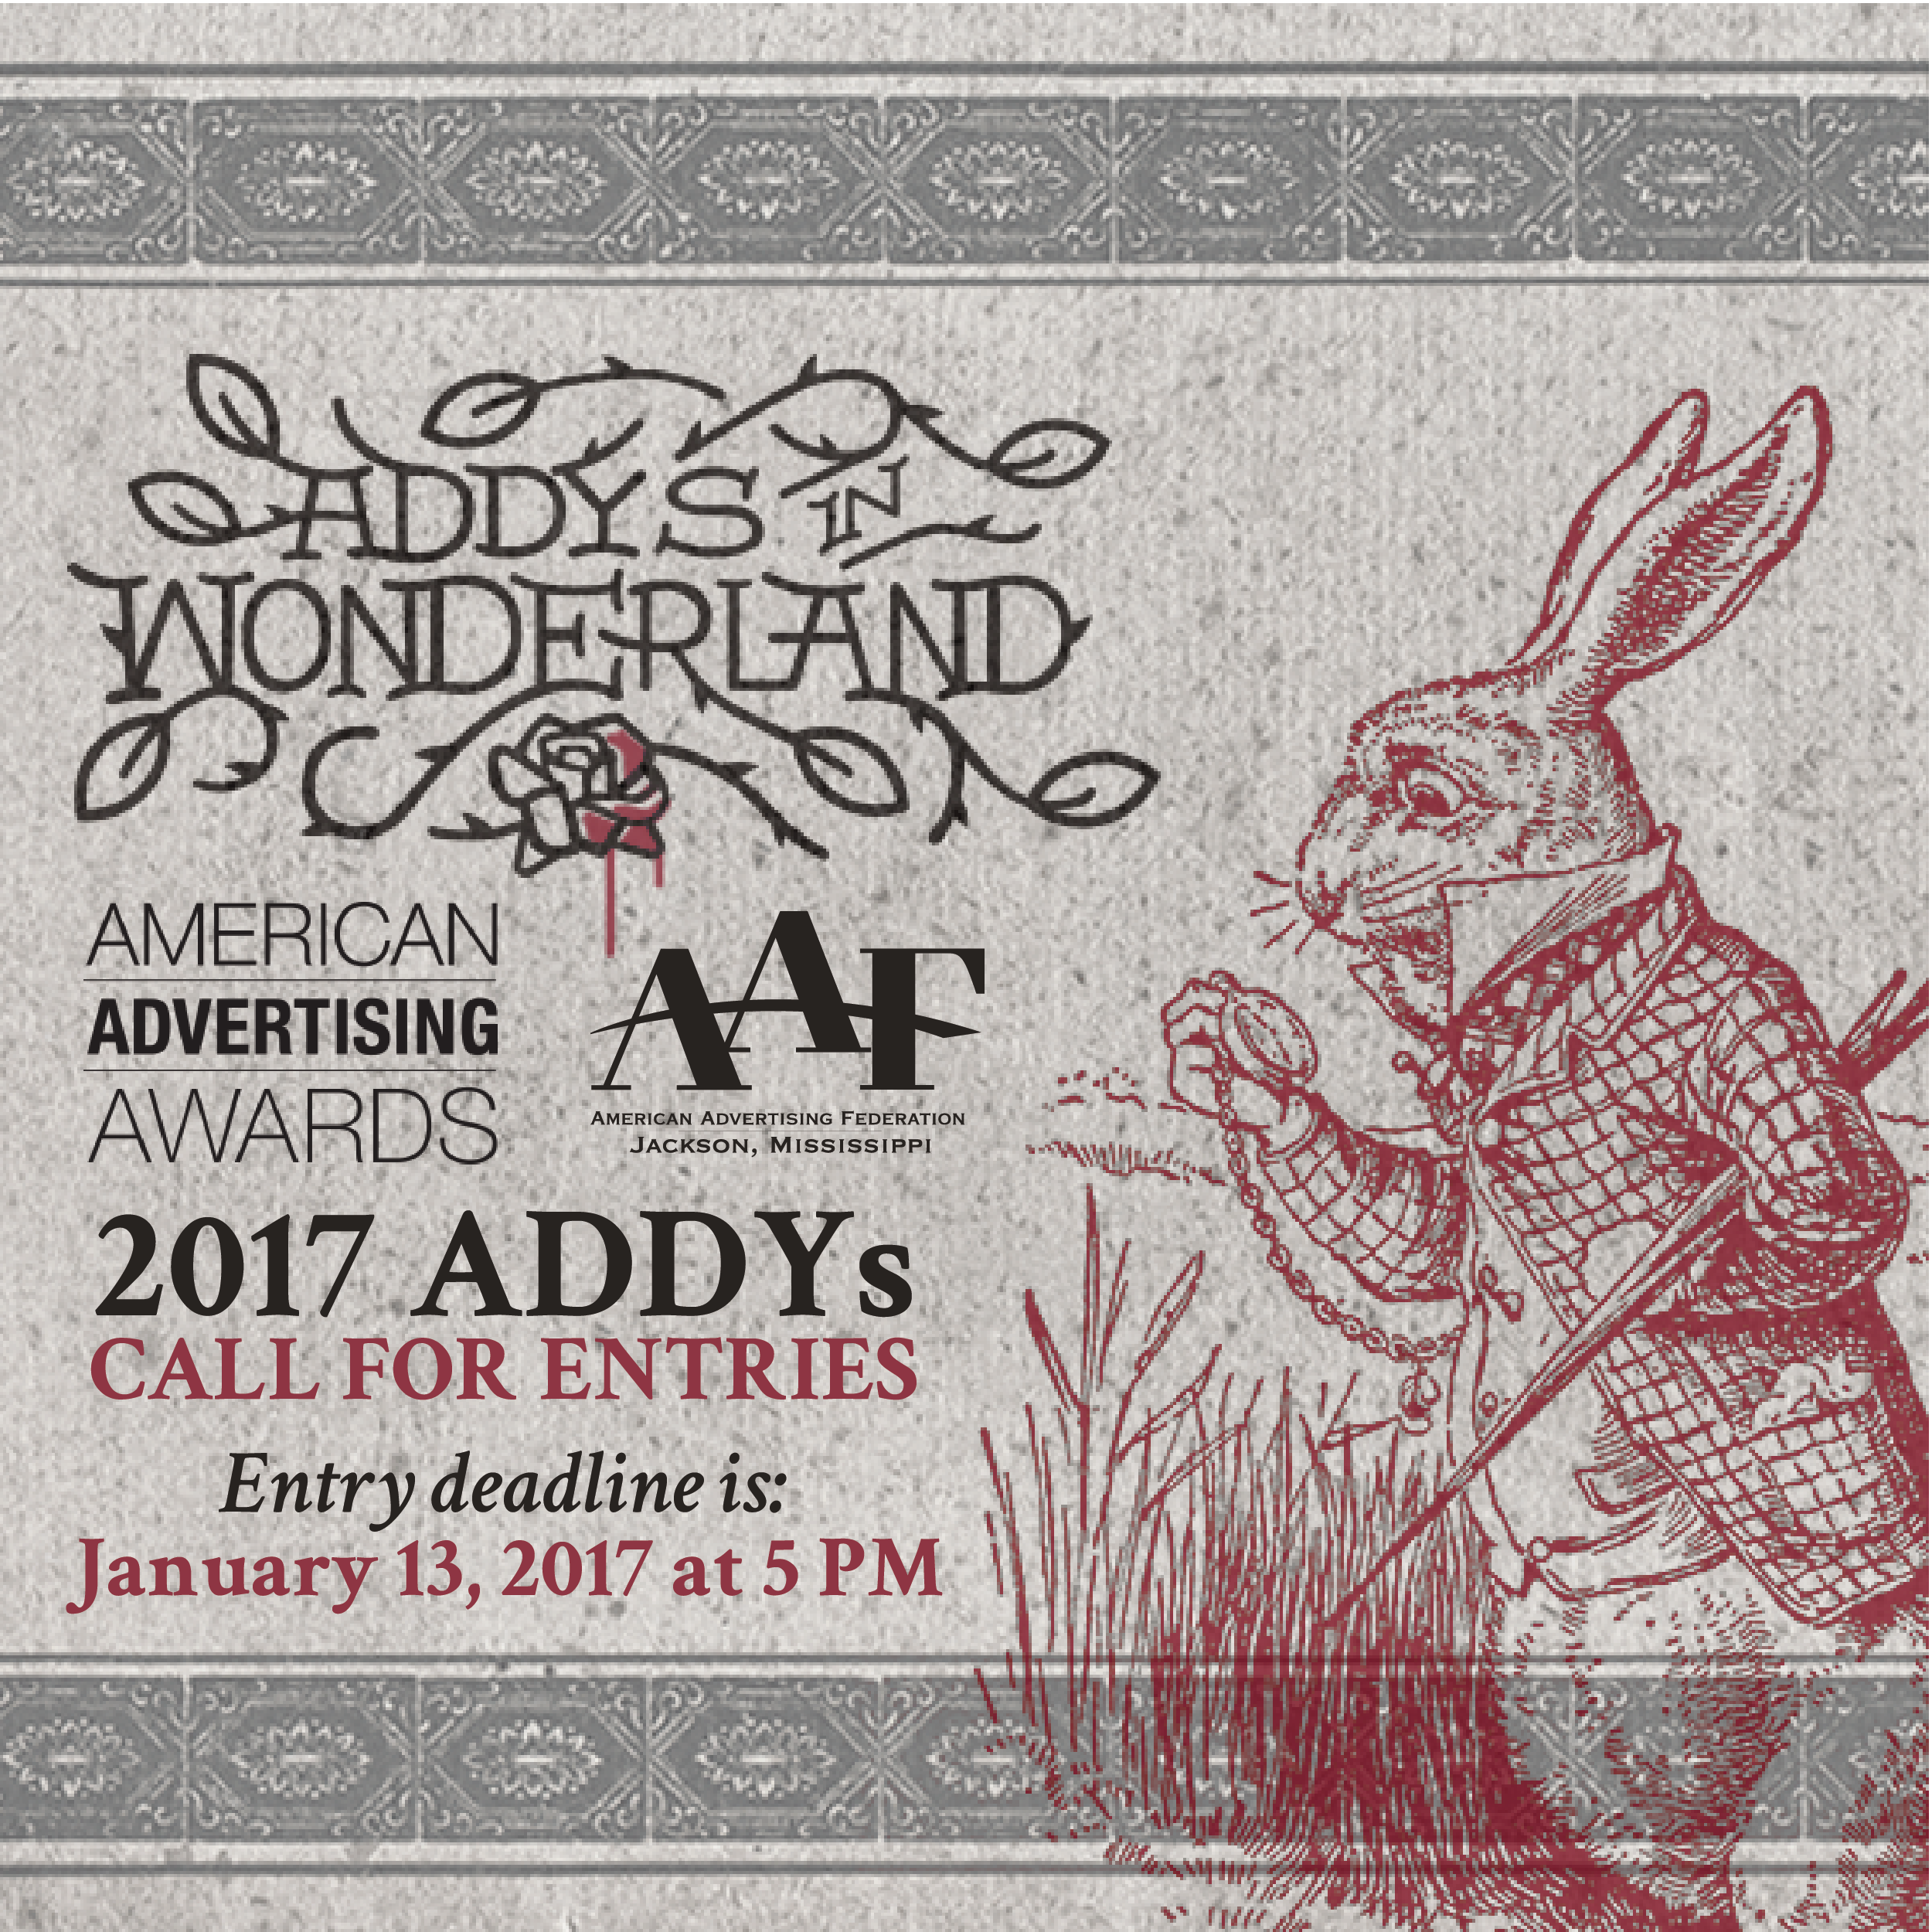 2017-addys-call-for-entries-01